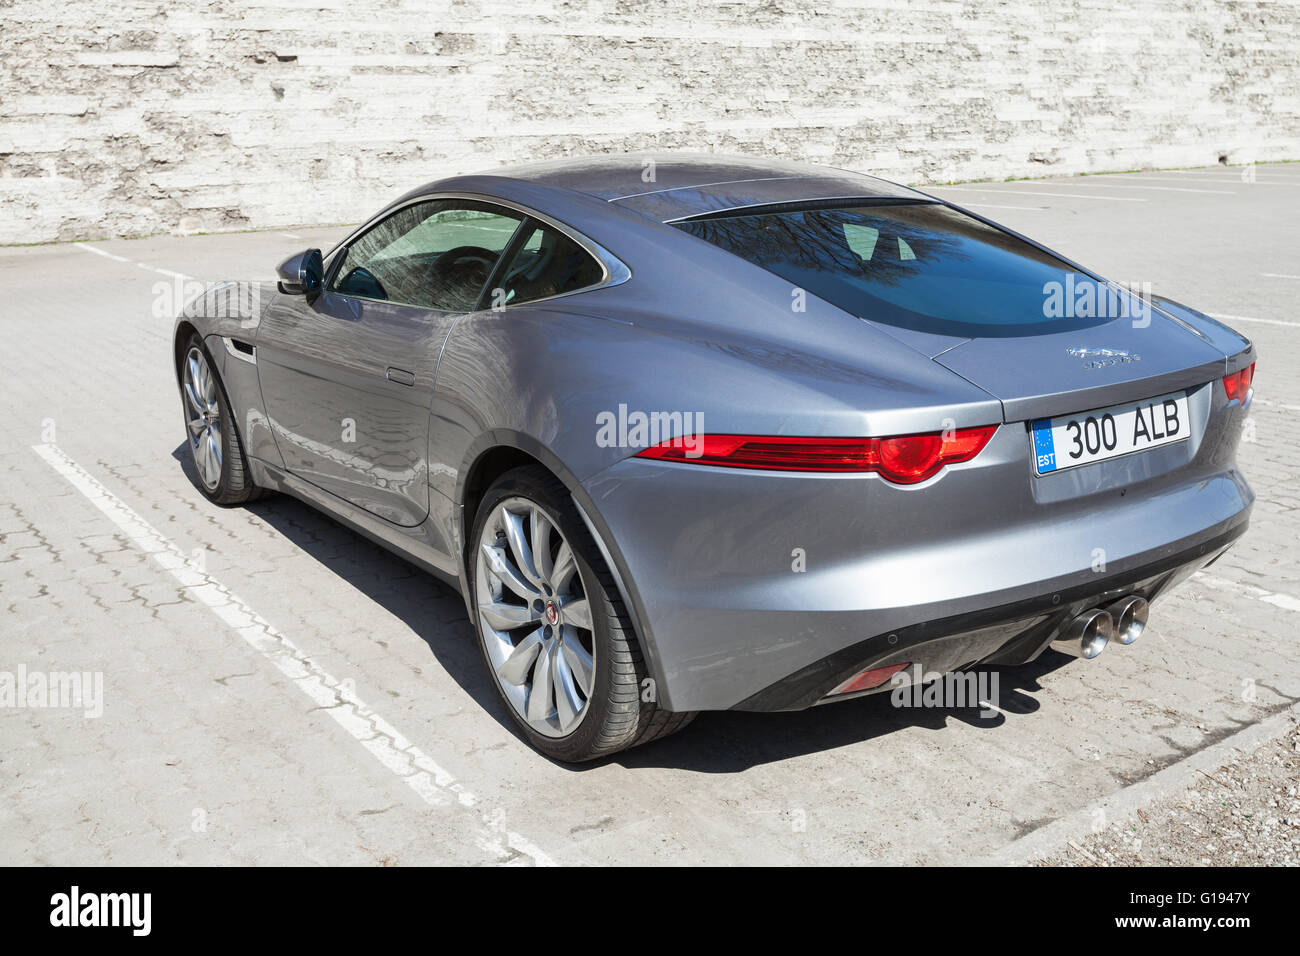 Awesome Tallinn, Estonia   May 2, 2016: Gray Metallic Jaguar F Type Coupe, Rear  View. Two Seat Sports Car, Based On A Platform Of The XK